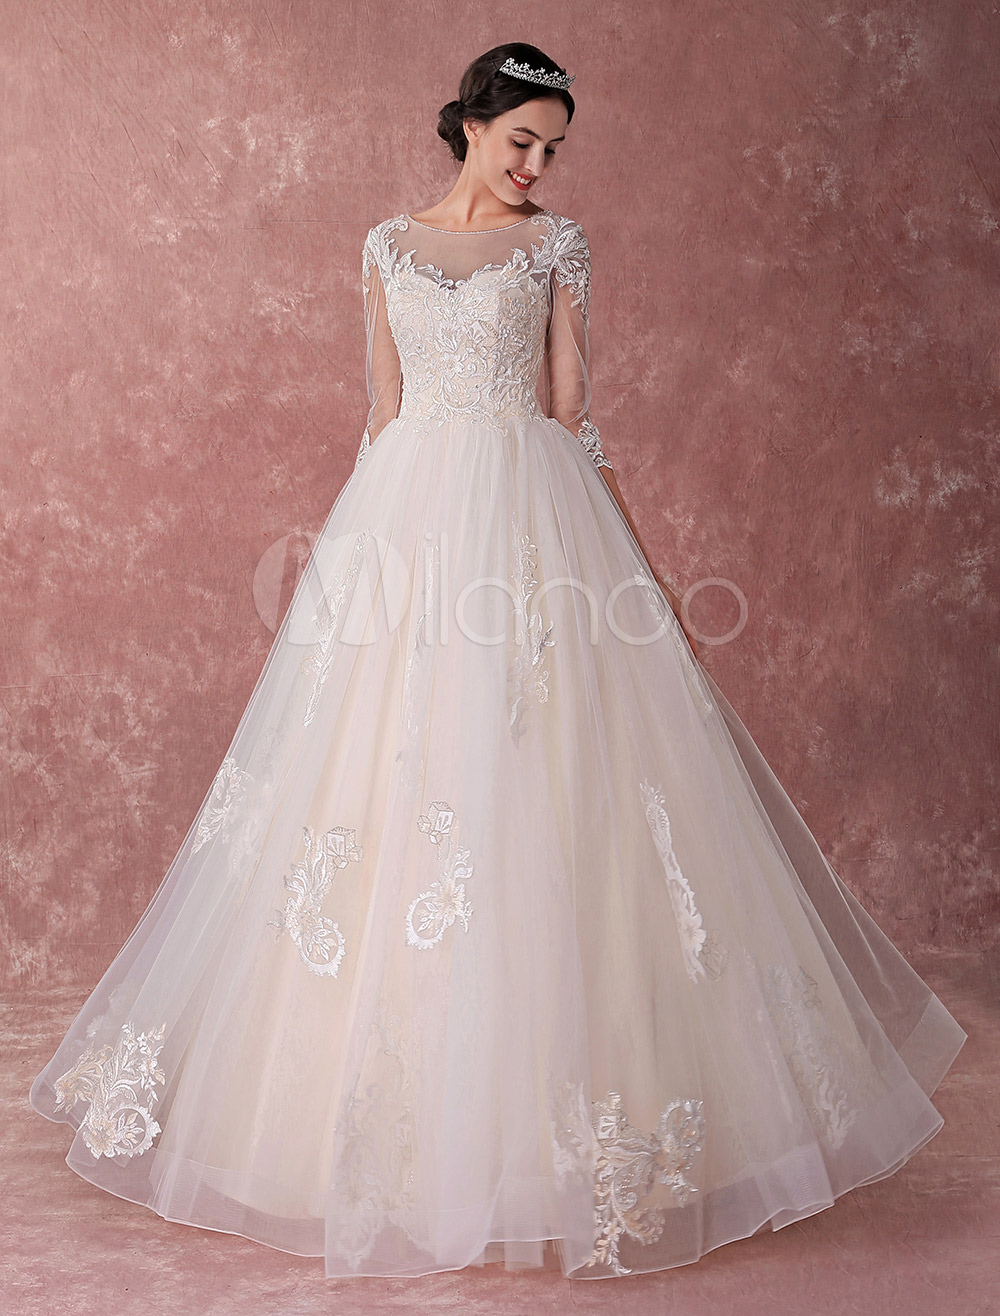 1e2194677b7 Champagne Wedding Dresses Princess Ball Gown Bridal Dress Lace Tulle ...